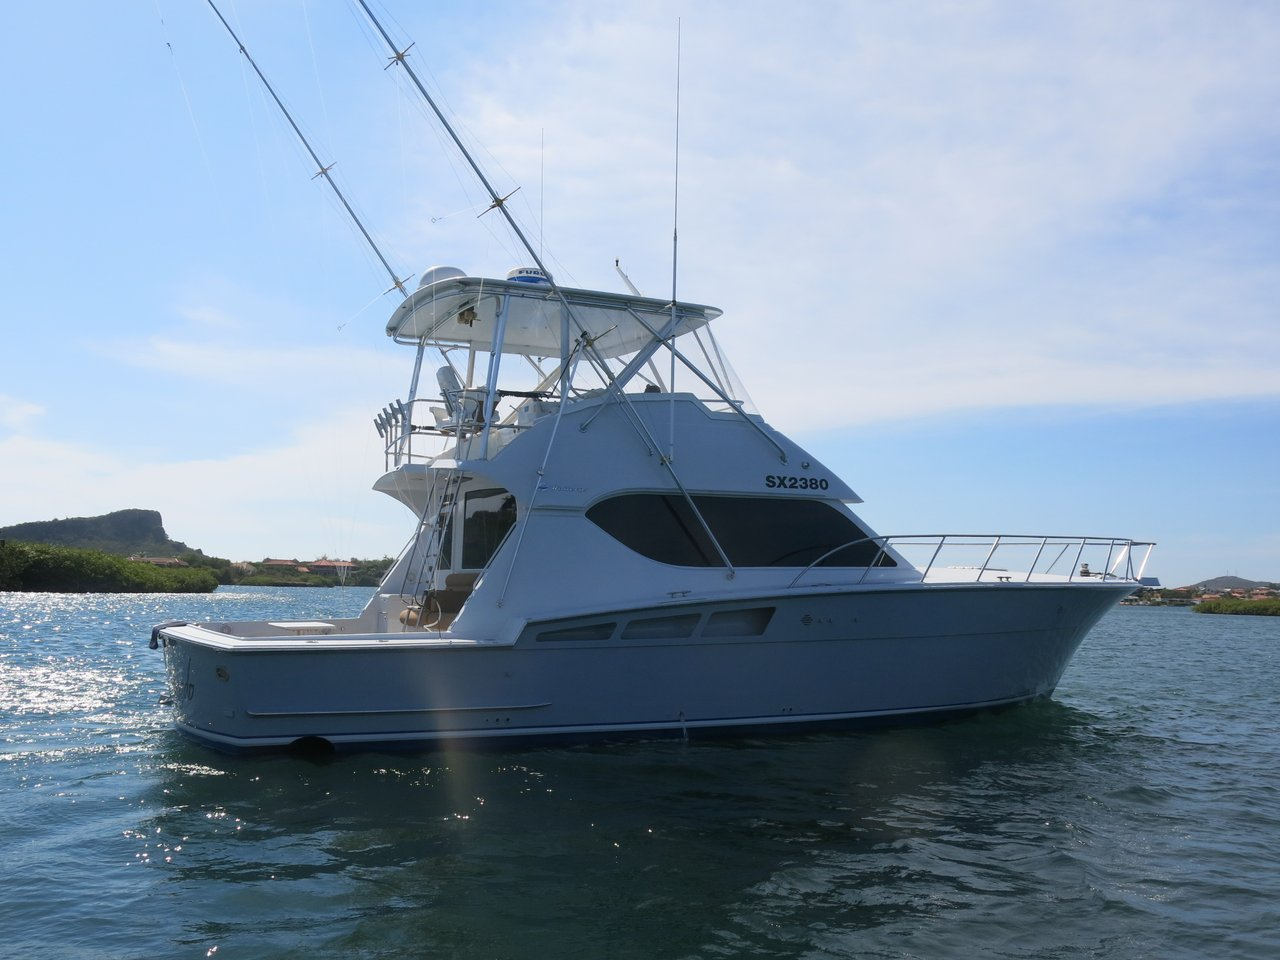 153573.59f304ed39eff244758211cb.xl 1999 used hatteras convertible boat for sale $349,000 Hatteras Sportfish 45C at virtualis.co